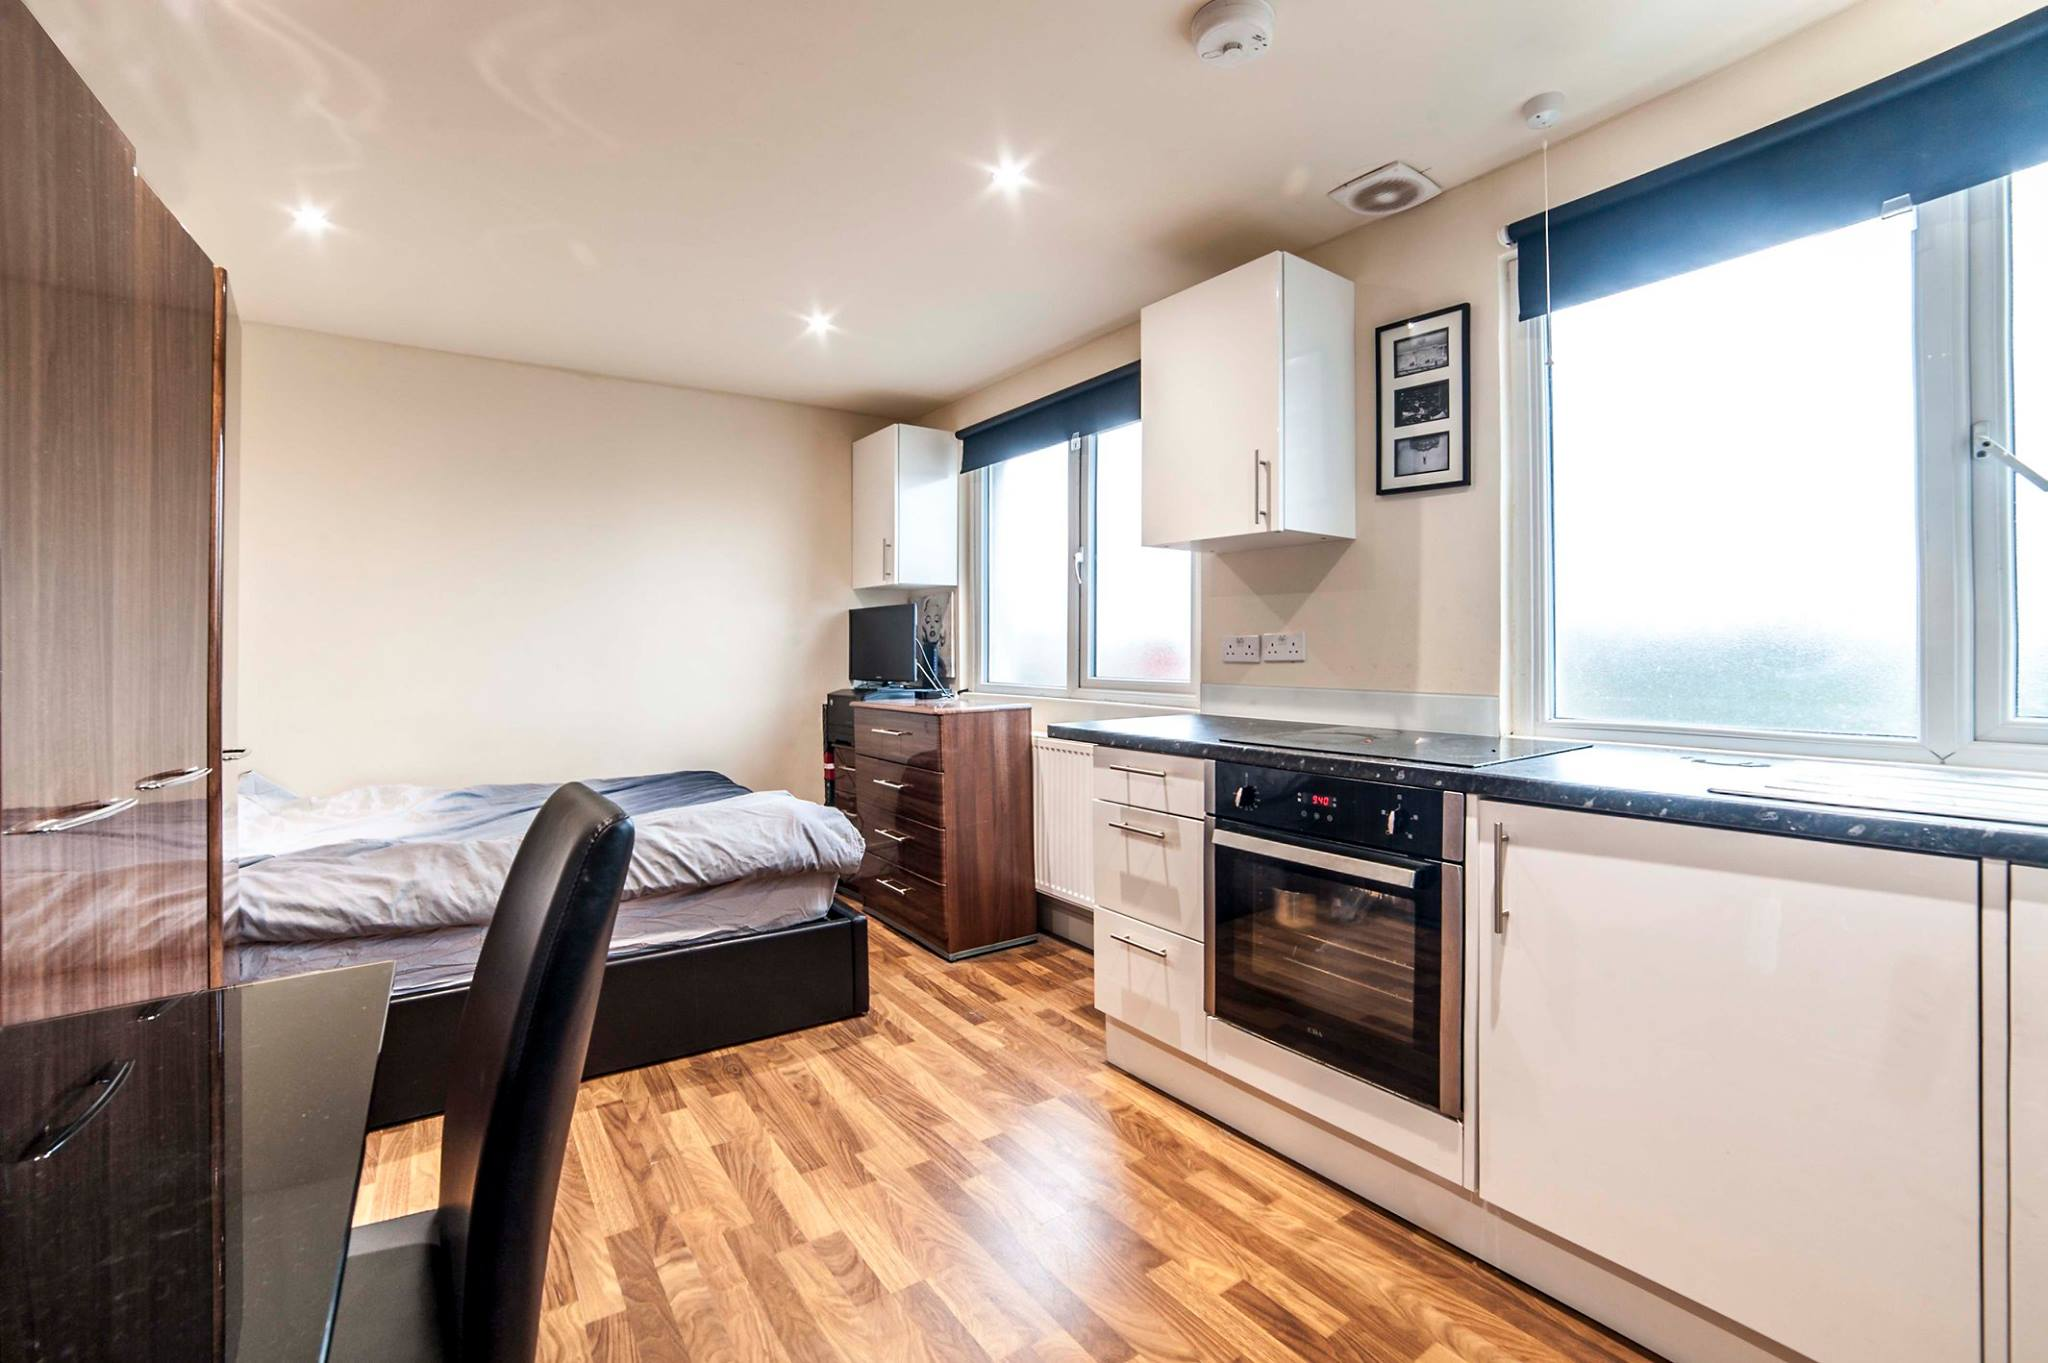 New Studio Flat To Let In Hendon